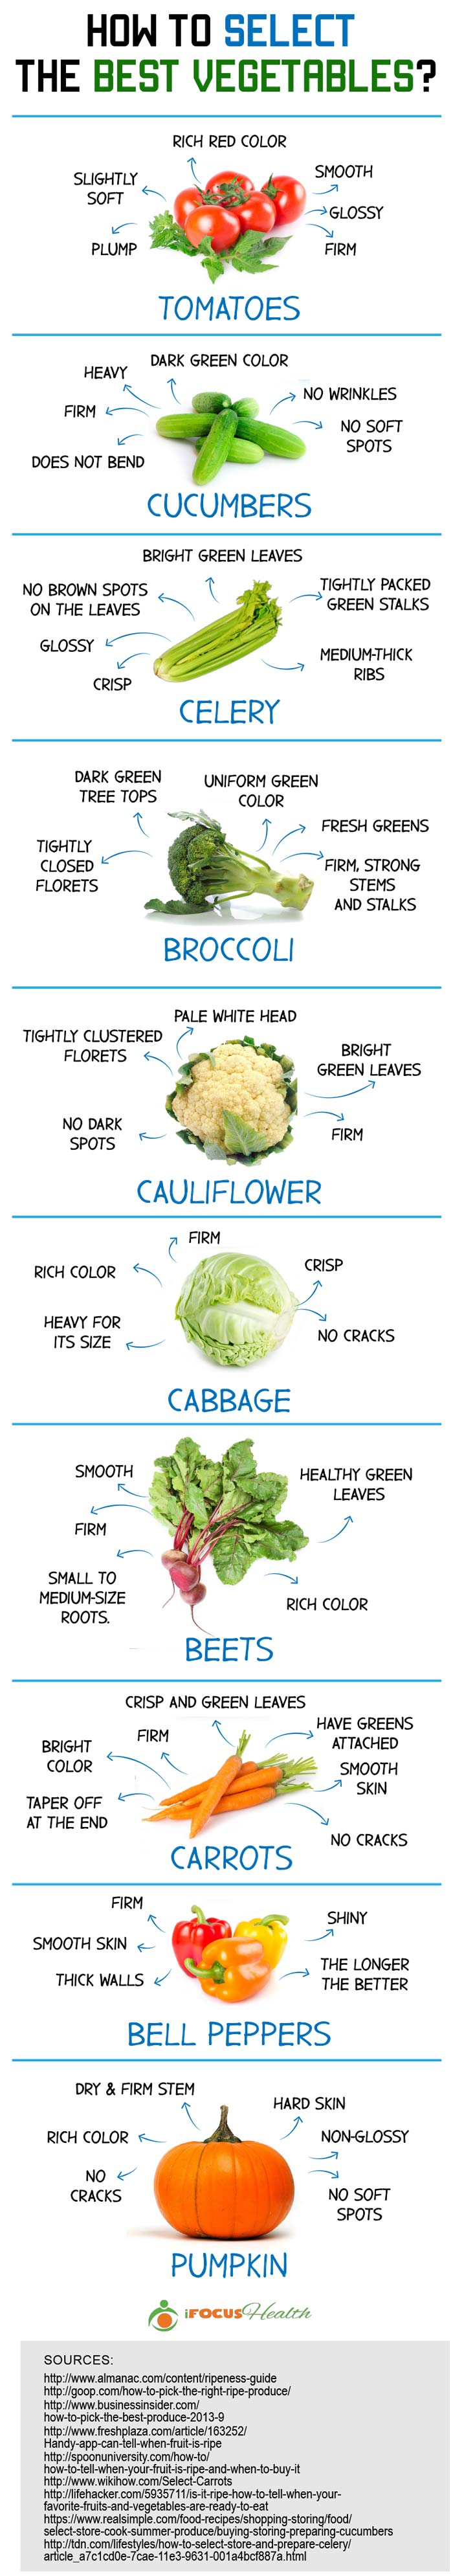 how to select the best vegetables infographic